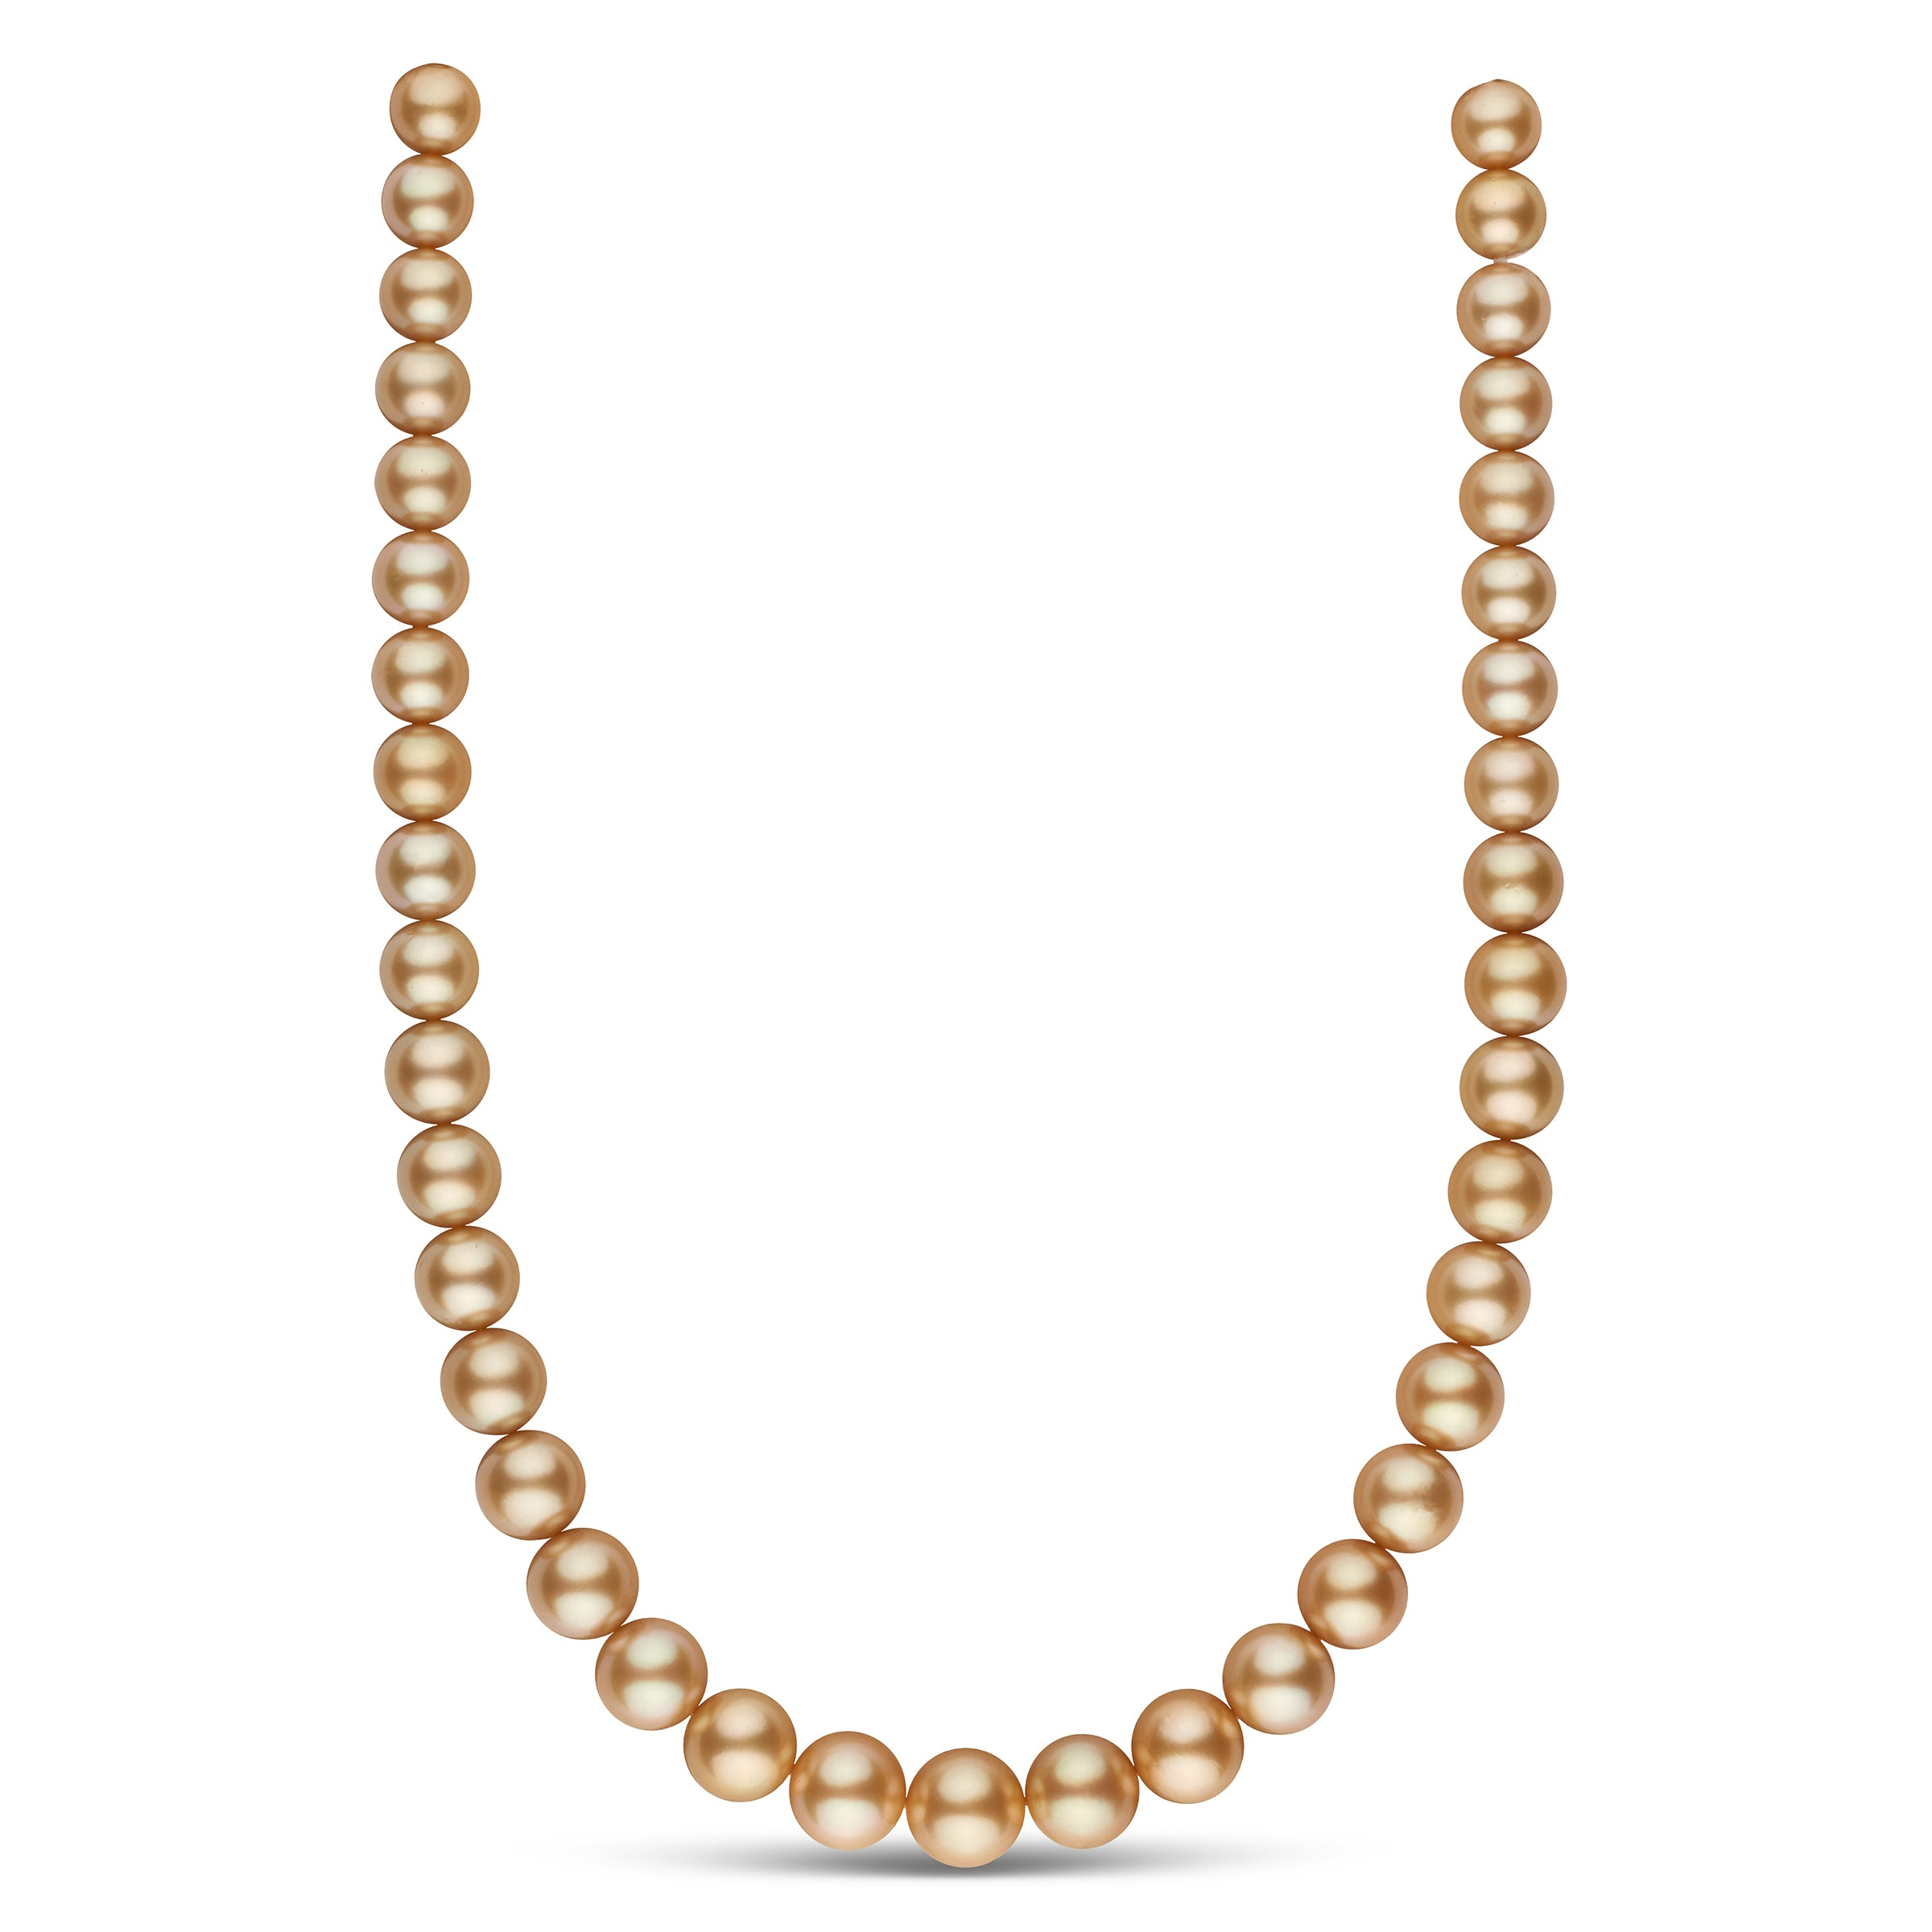 The Liza Minnelli Golden South Sea Pearl Necklace